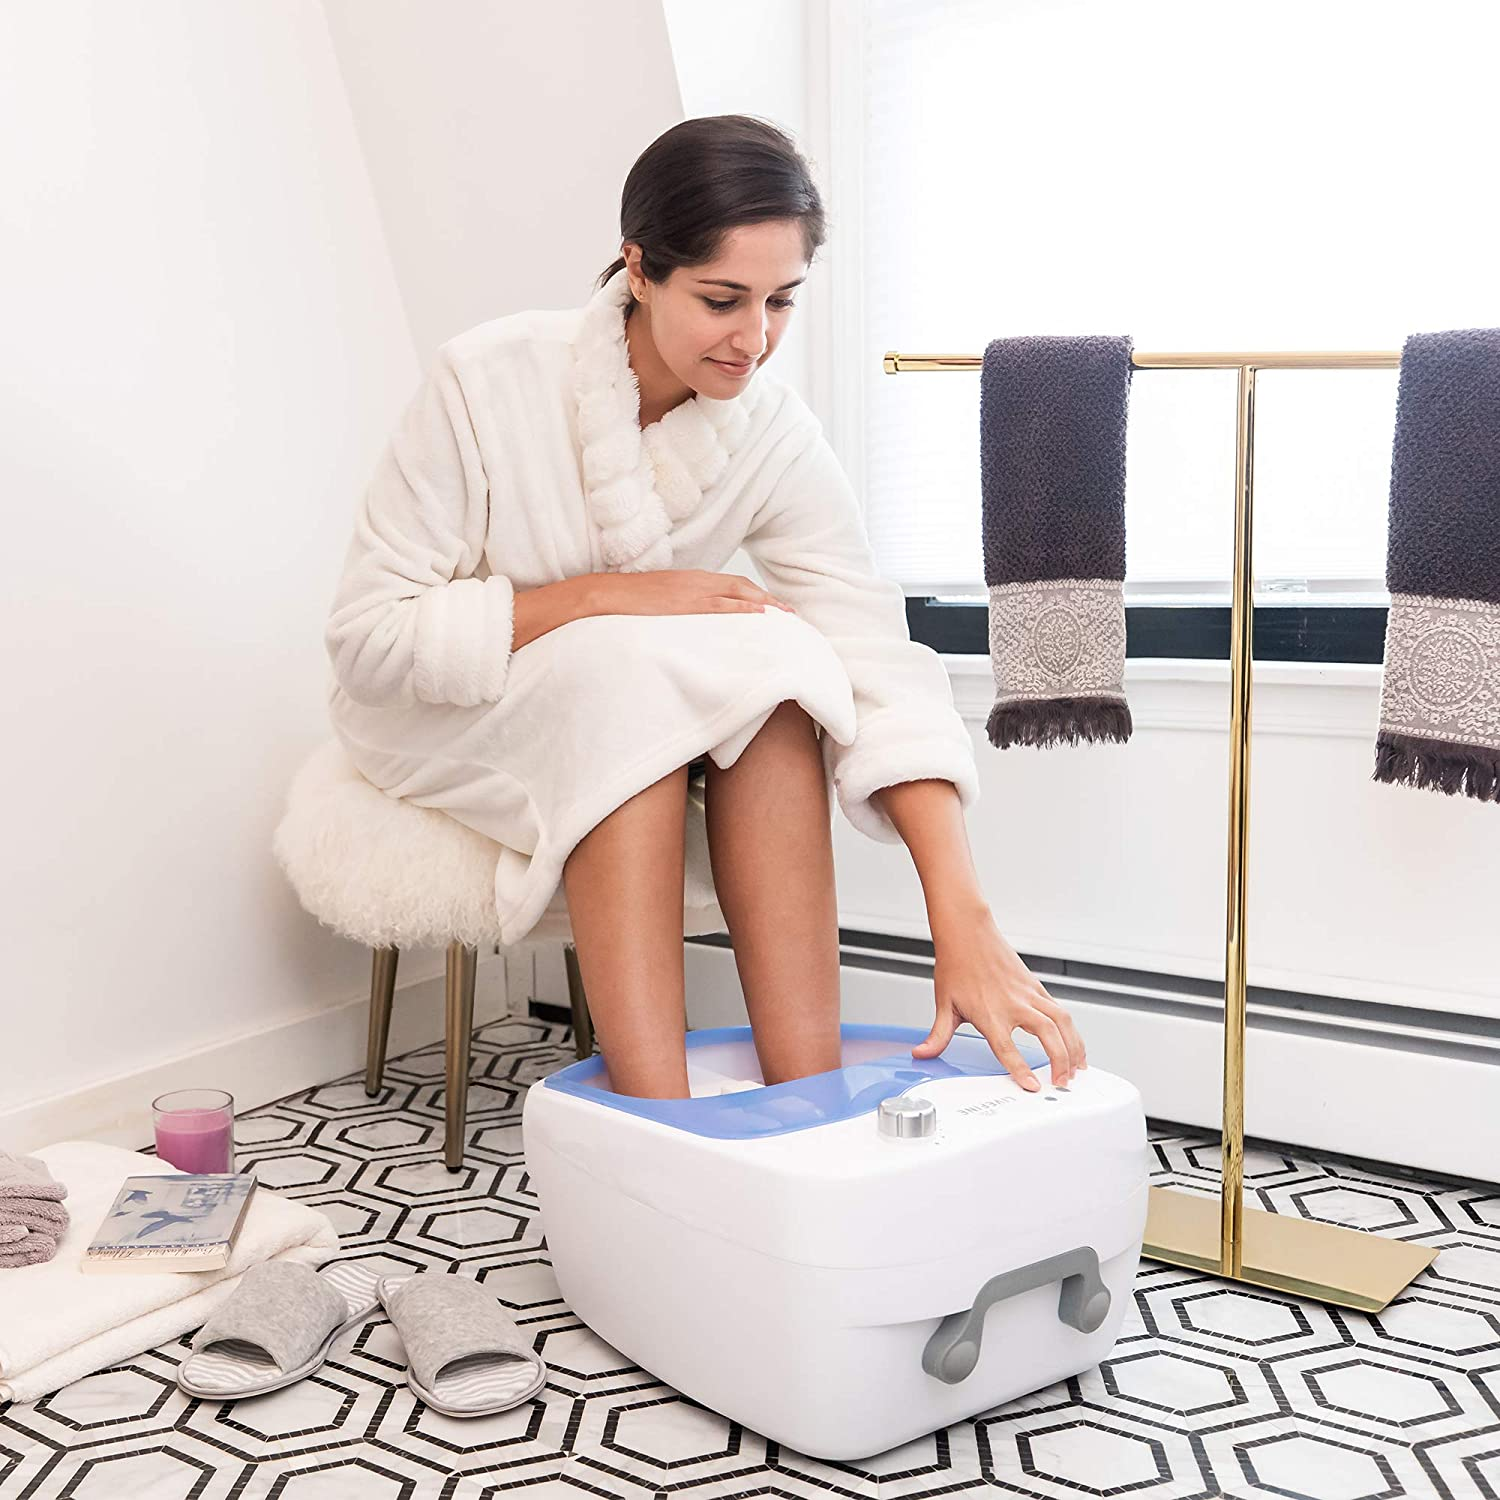 Amazon Com Livefine Foot Spa W Adjustable Speed Aqua Air Jets Home Heated 108 Bath Massage Rollers Bubbles Pumice Stone Health Personal Care